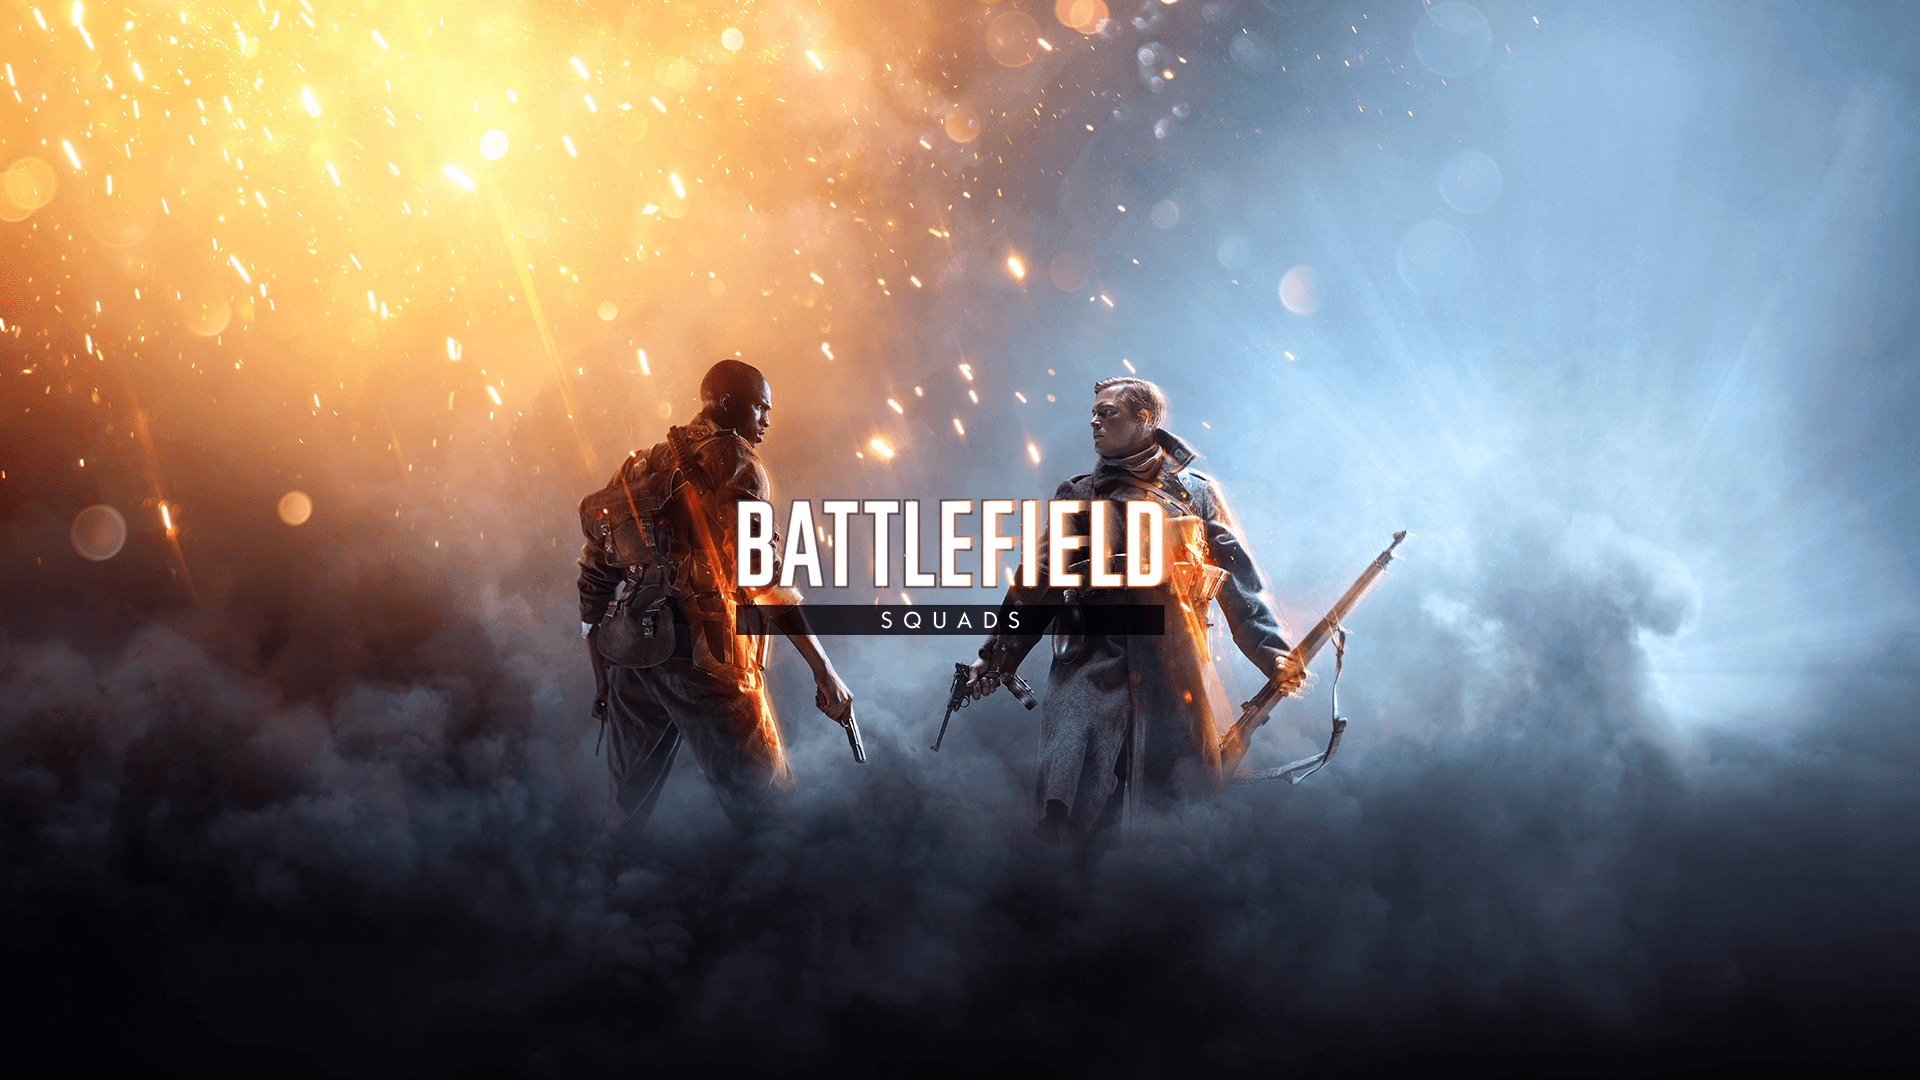 Being-one-of-the-most-anticipated-games-of-this-year-Battlefield-is-going-to-showcase-Battlefield-wallpaper-wp3603172